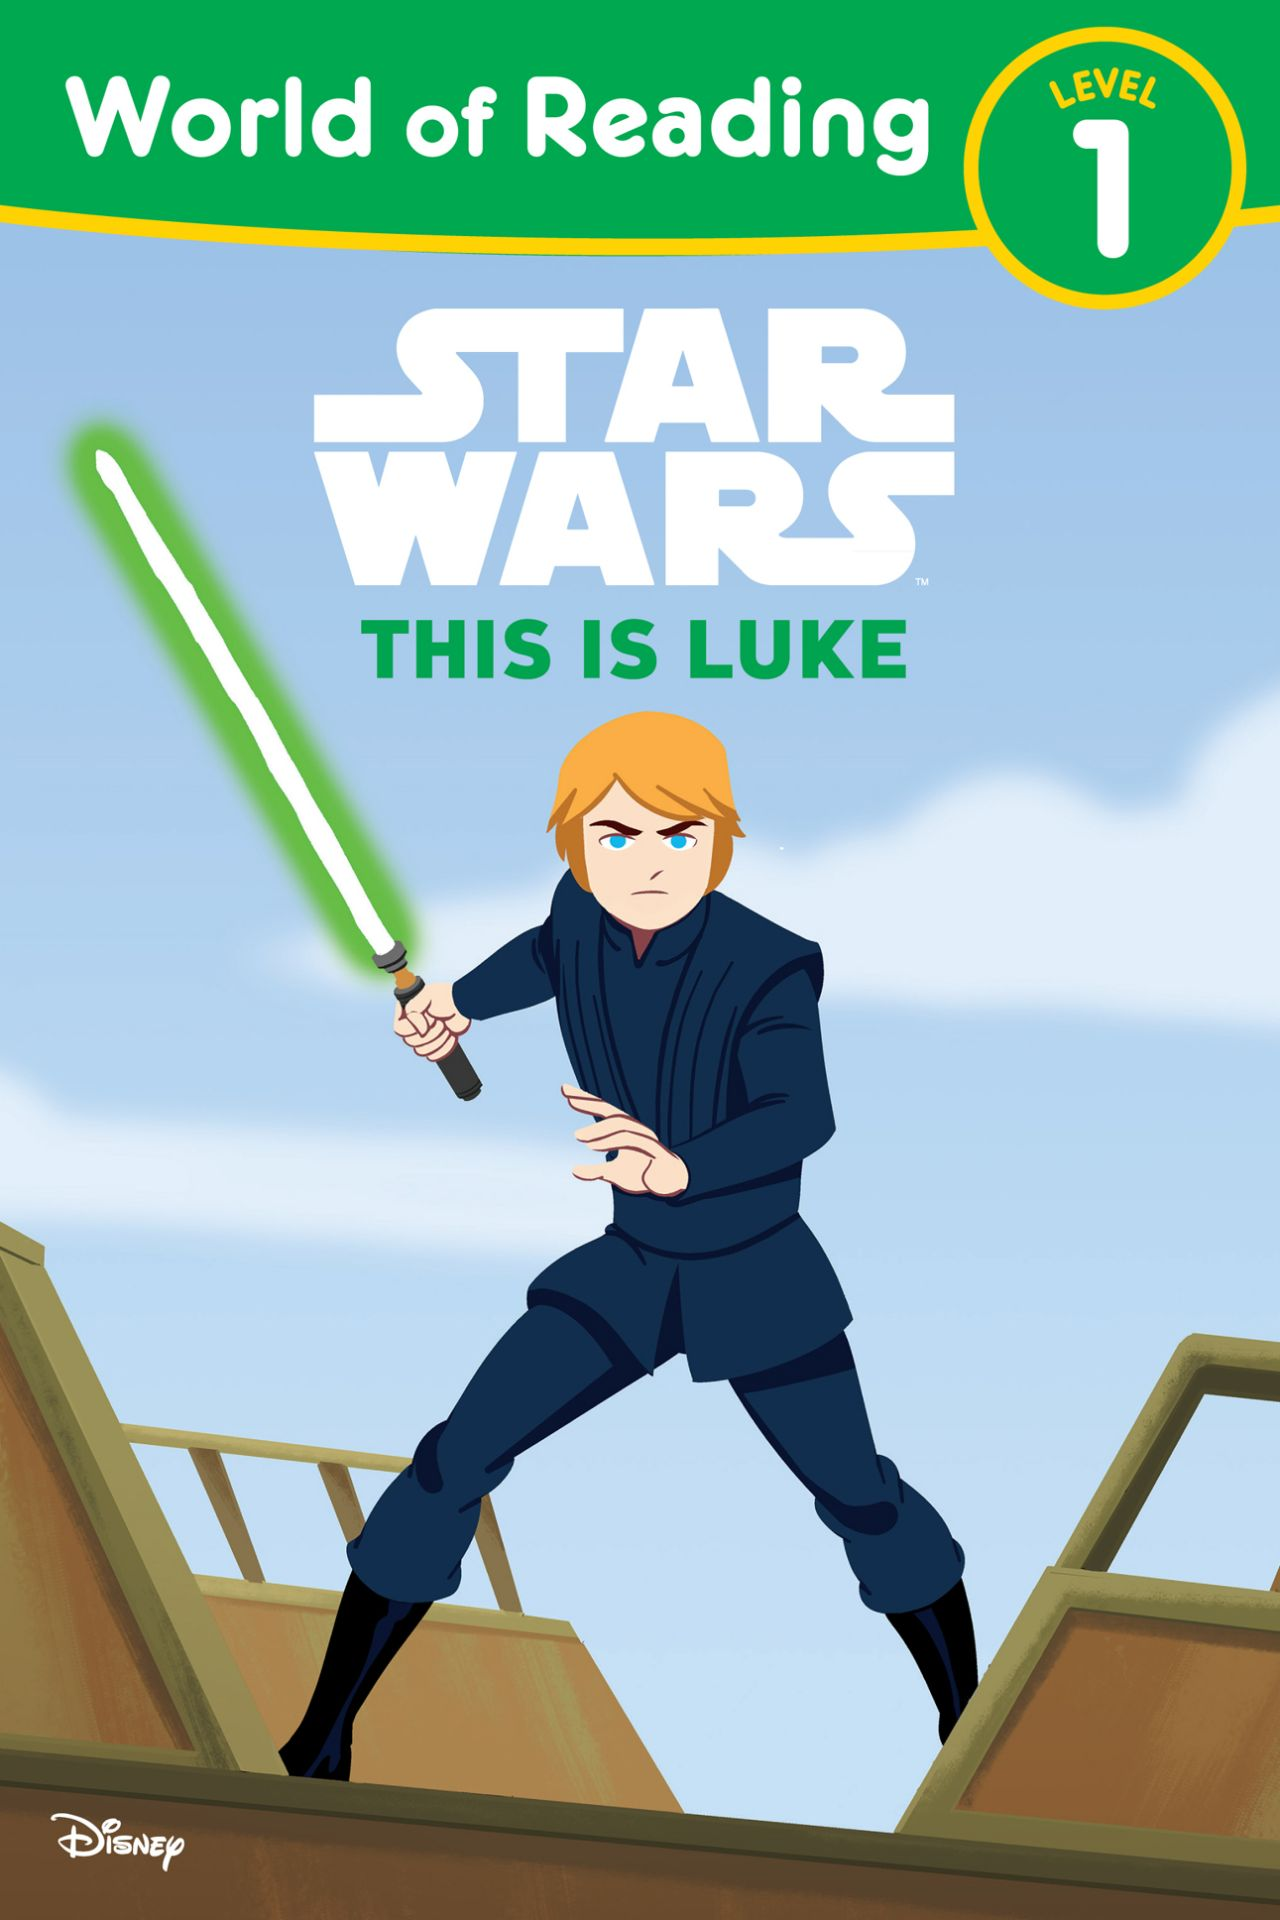 This is Luke